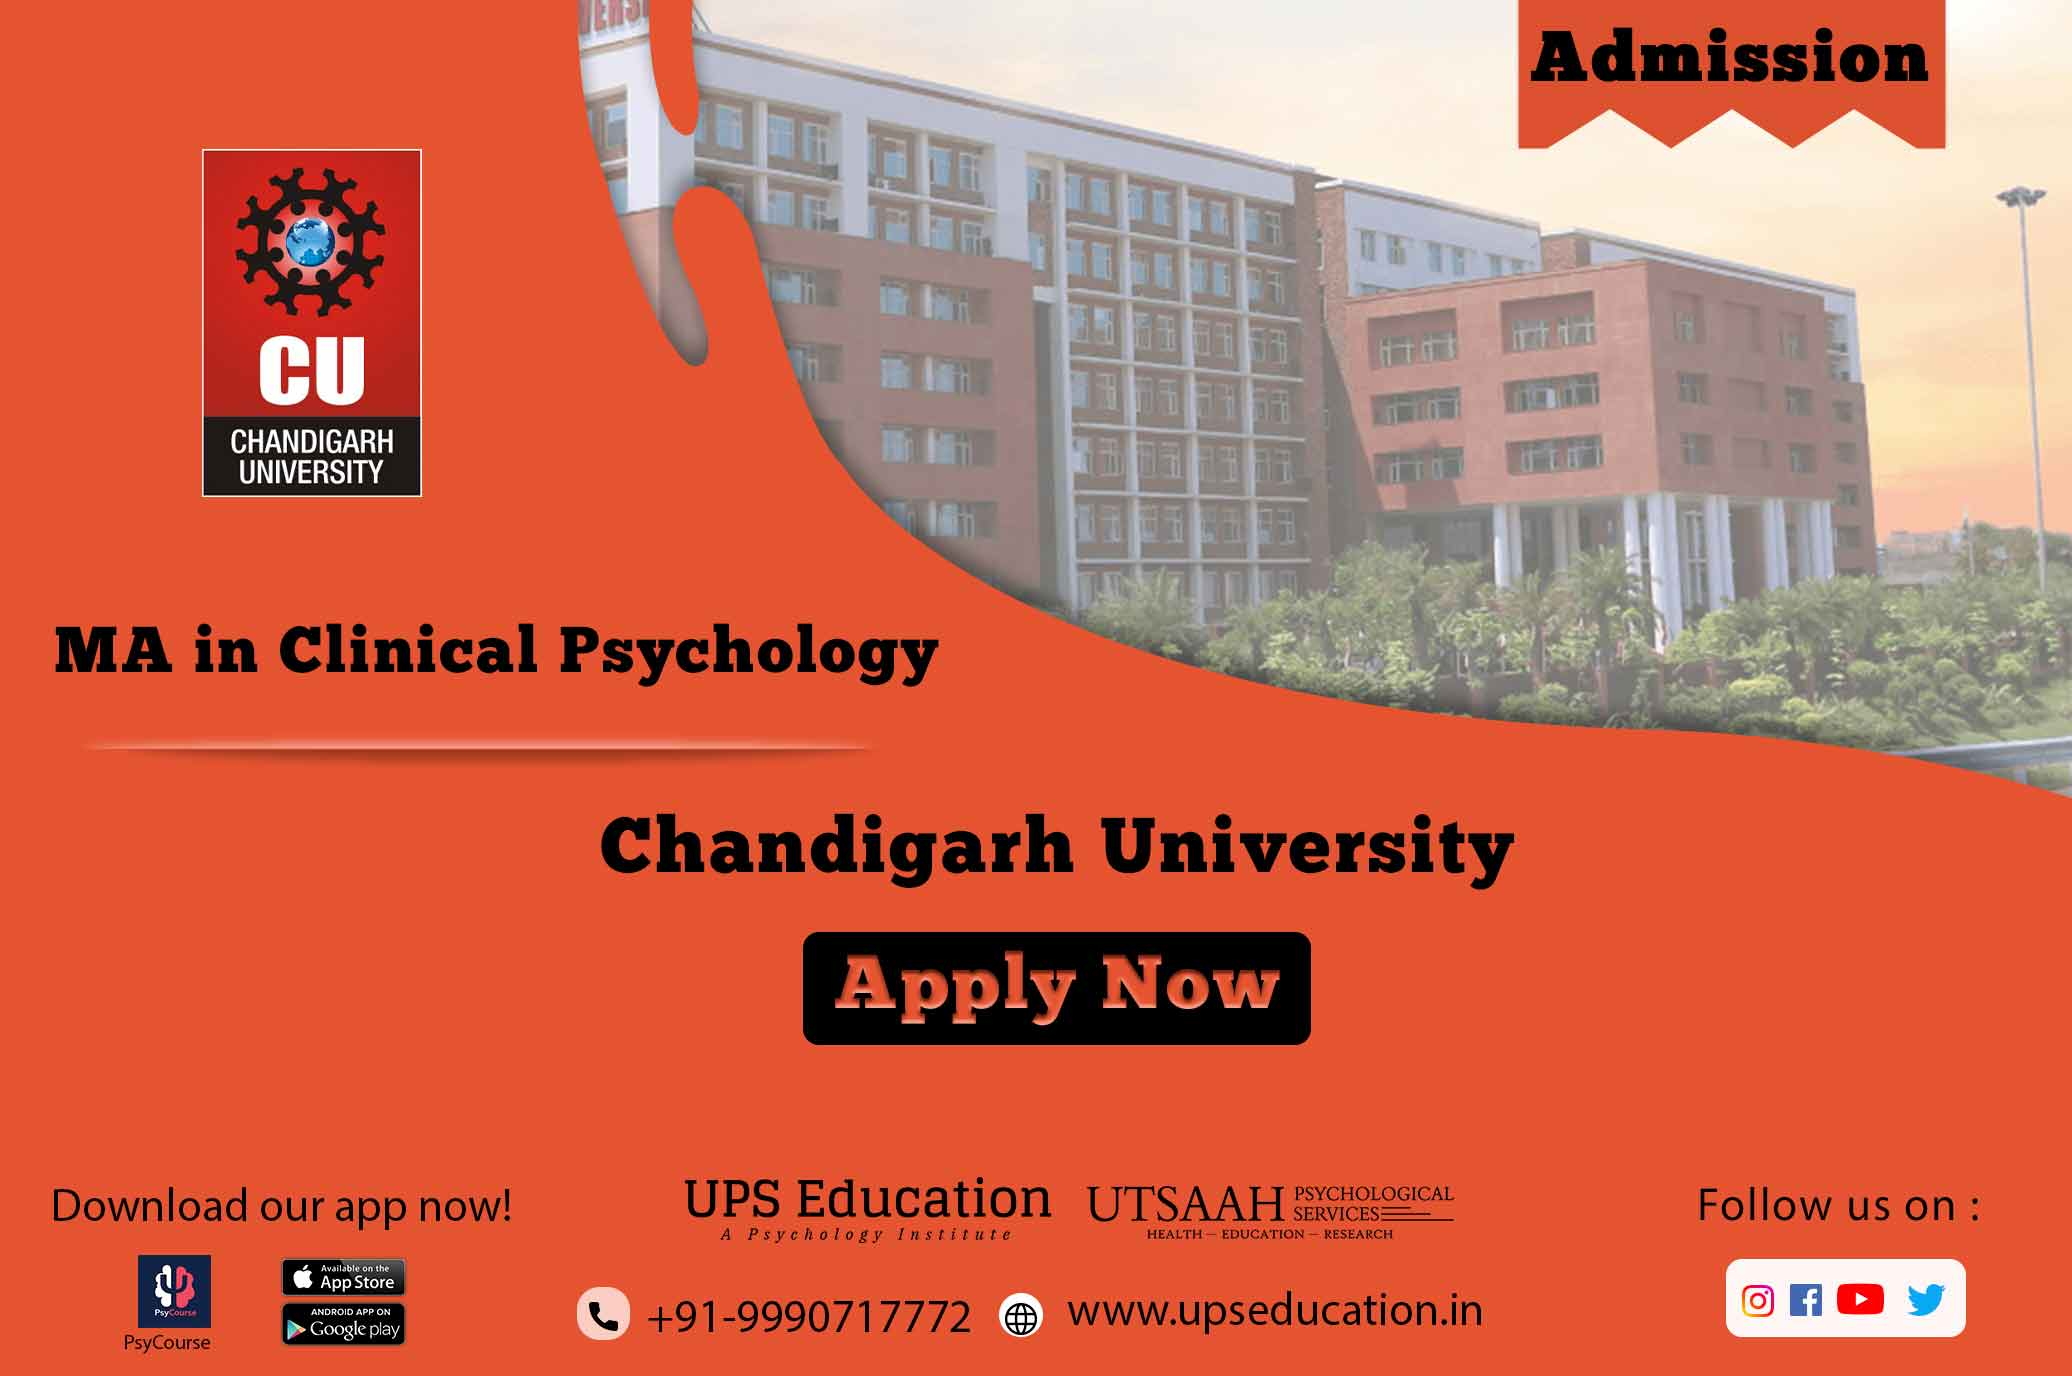 Chandigarh University MA in Psychology Admission form for the session 2021.